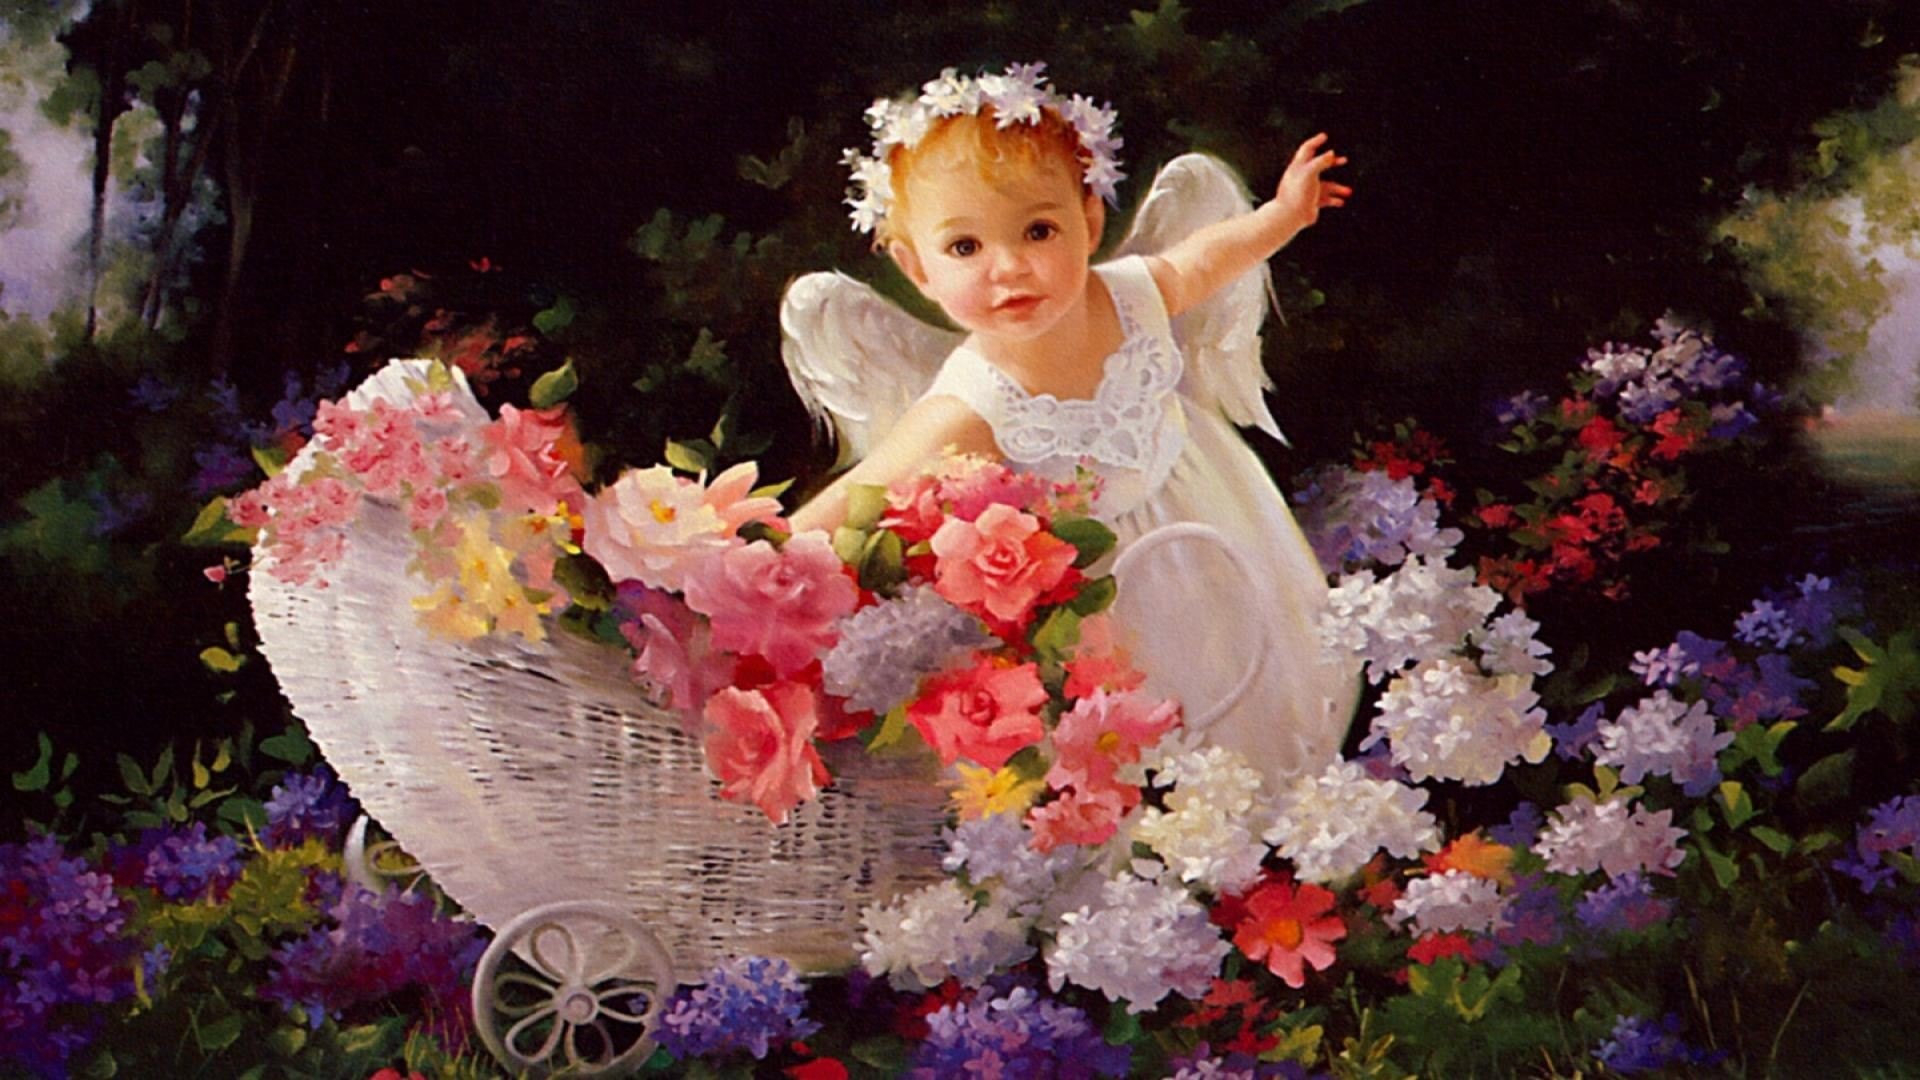 Res: 1920x1080, baby angels in heaven poems - Google Search